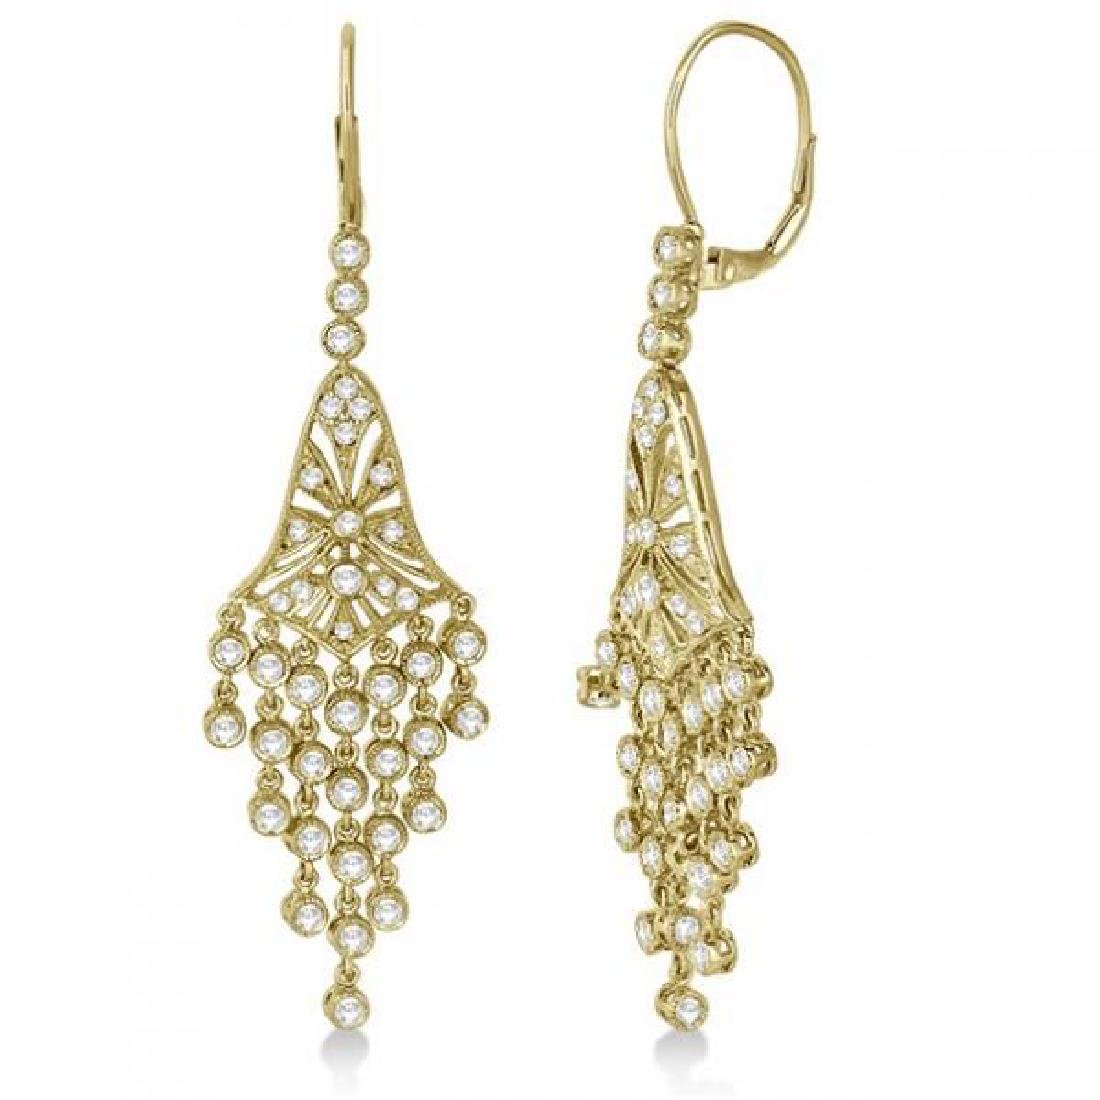 Bezel-Set Dangling Chandelier Diamond Earrings 14K Yell